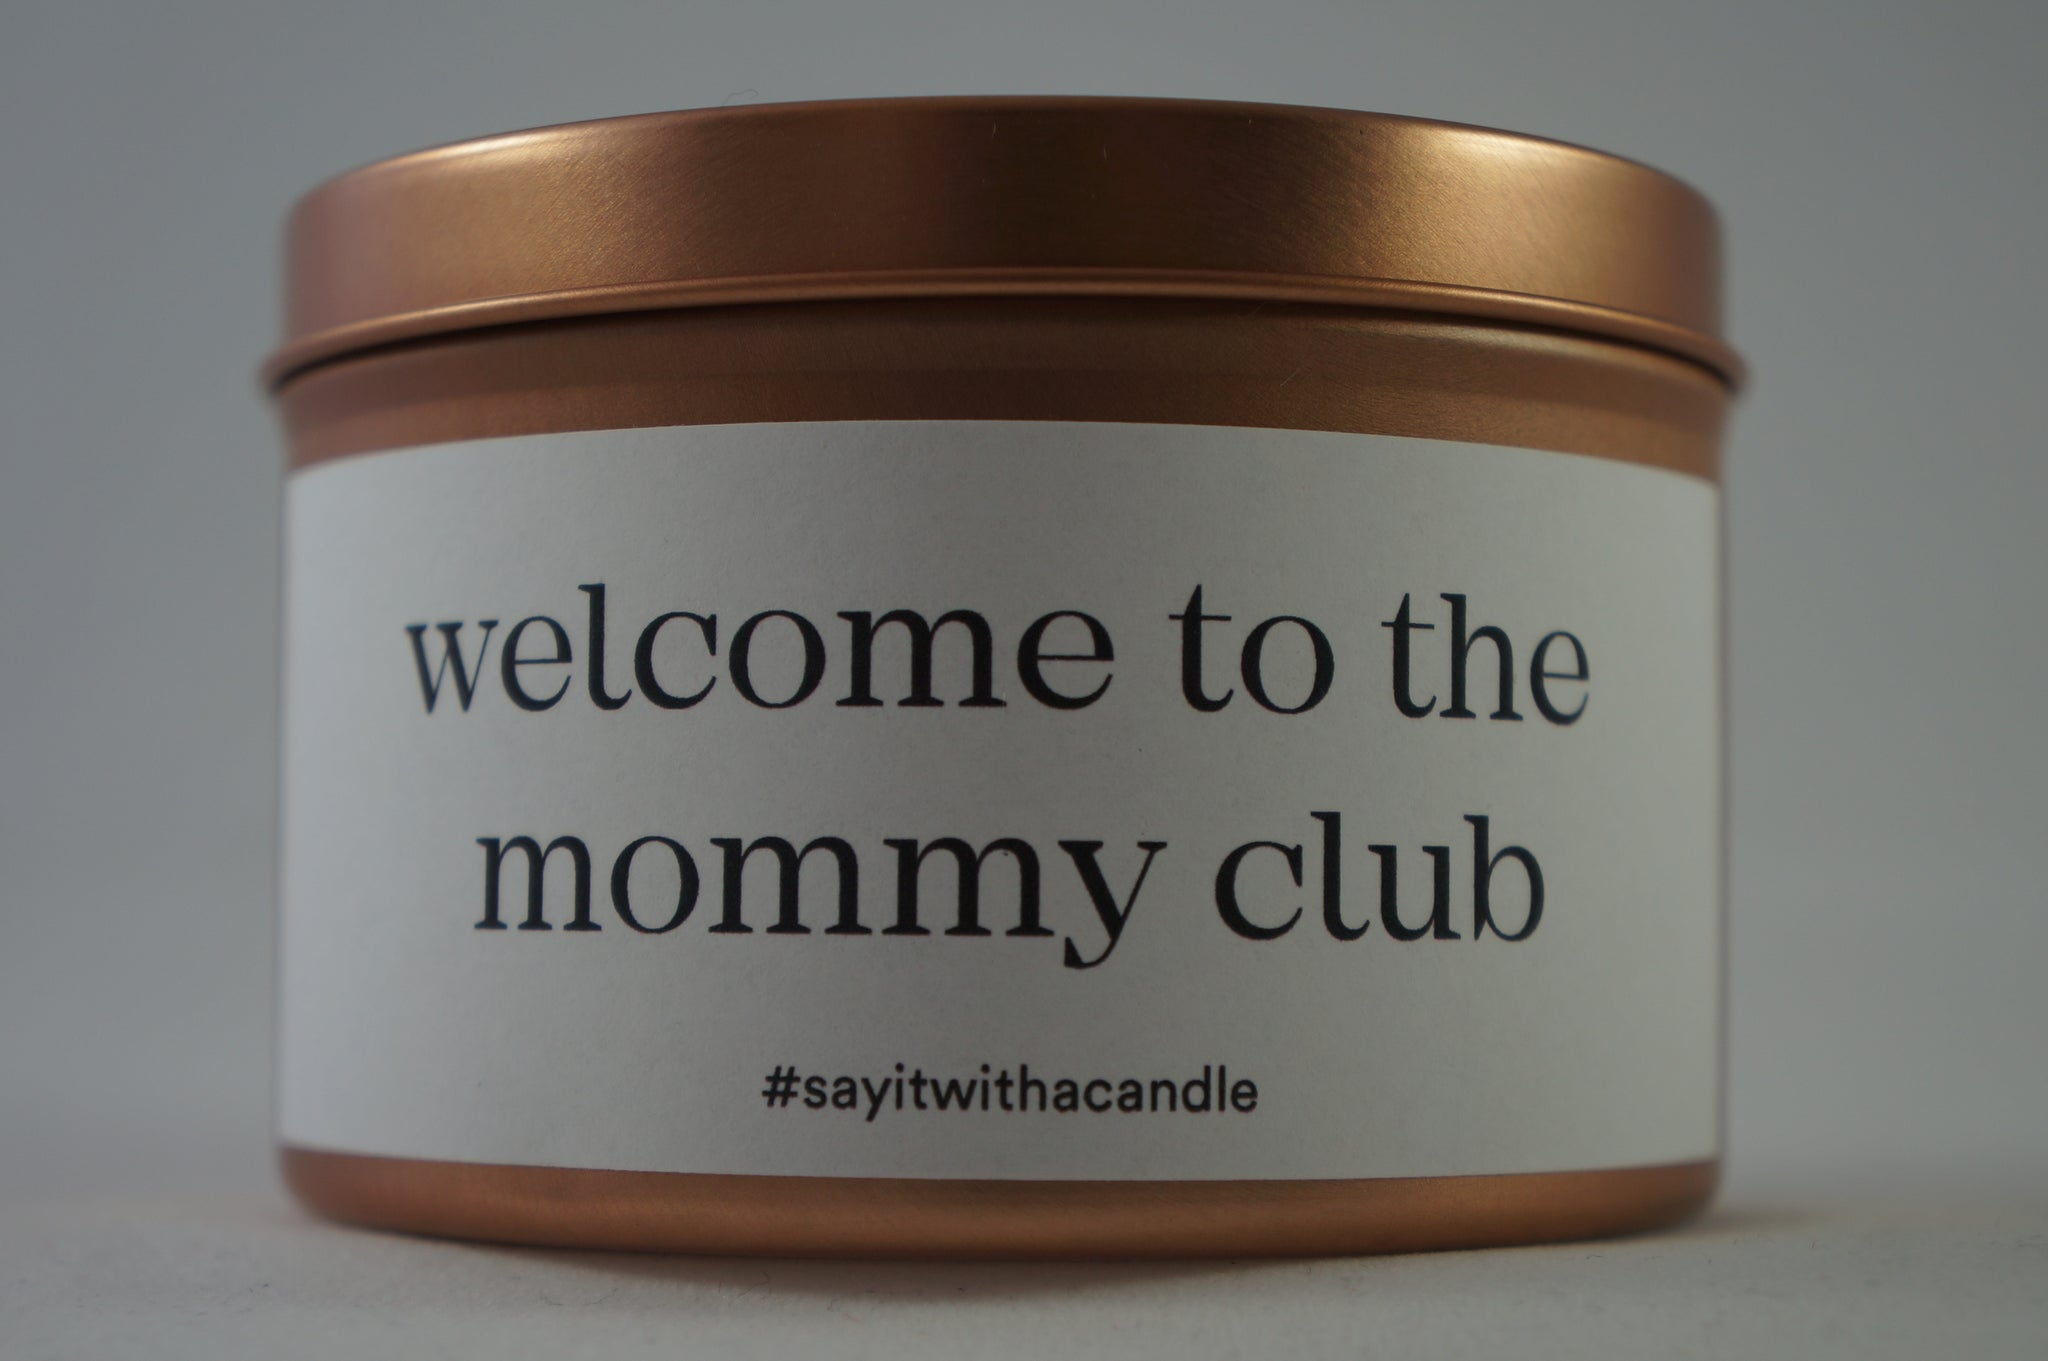 welcome to the mommy club